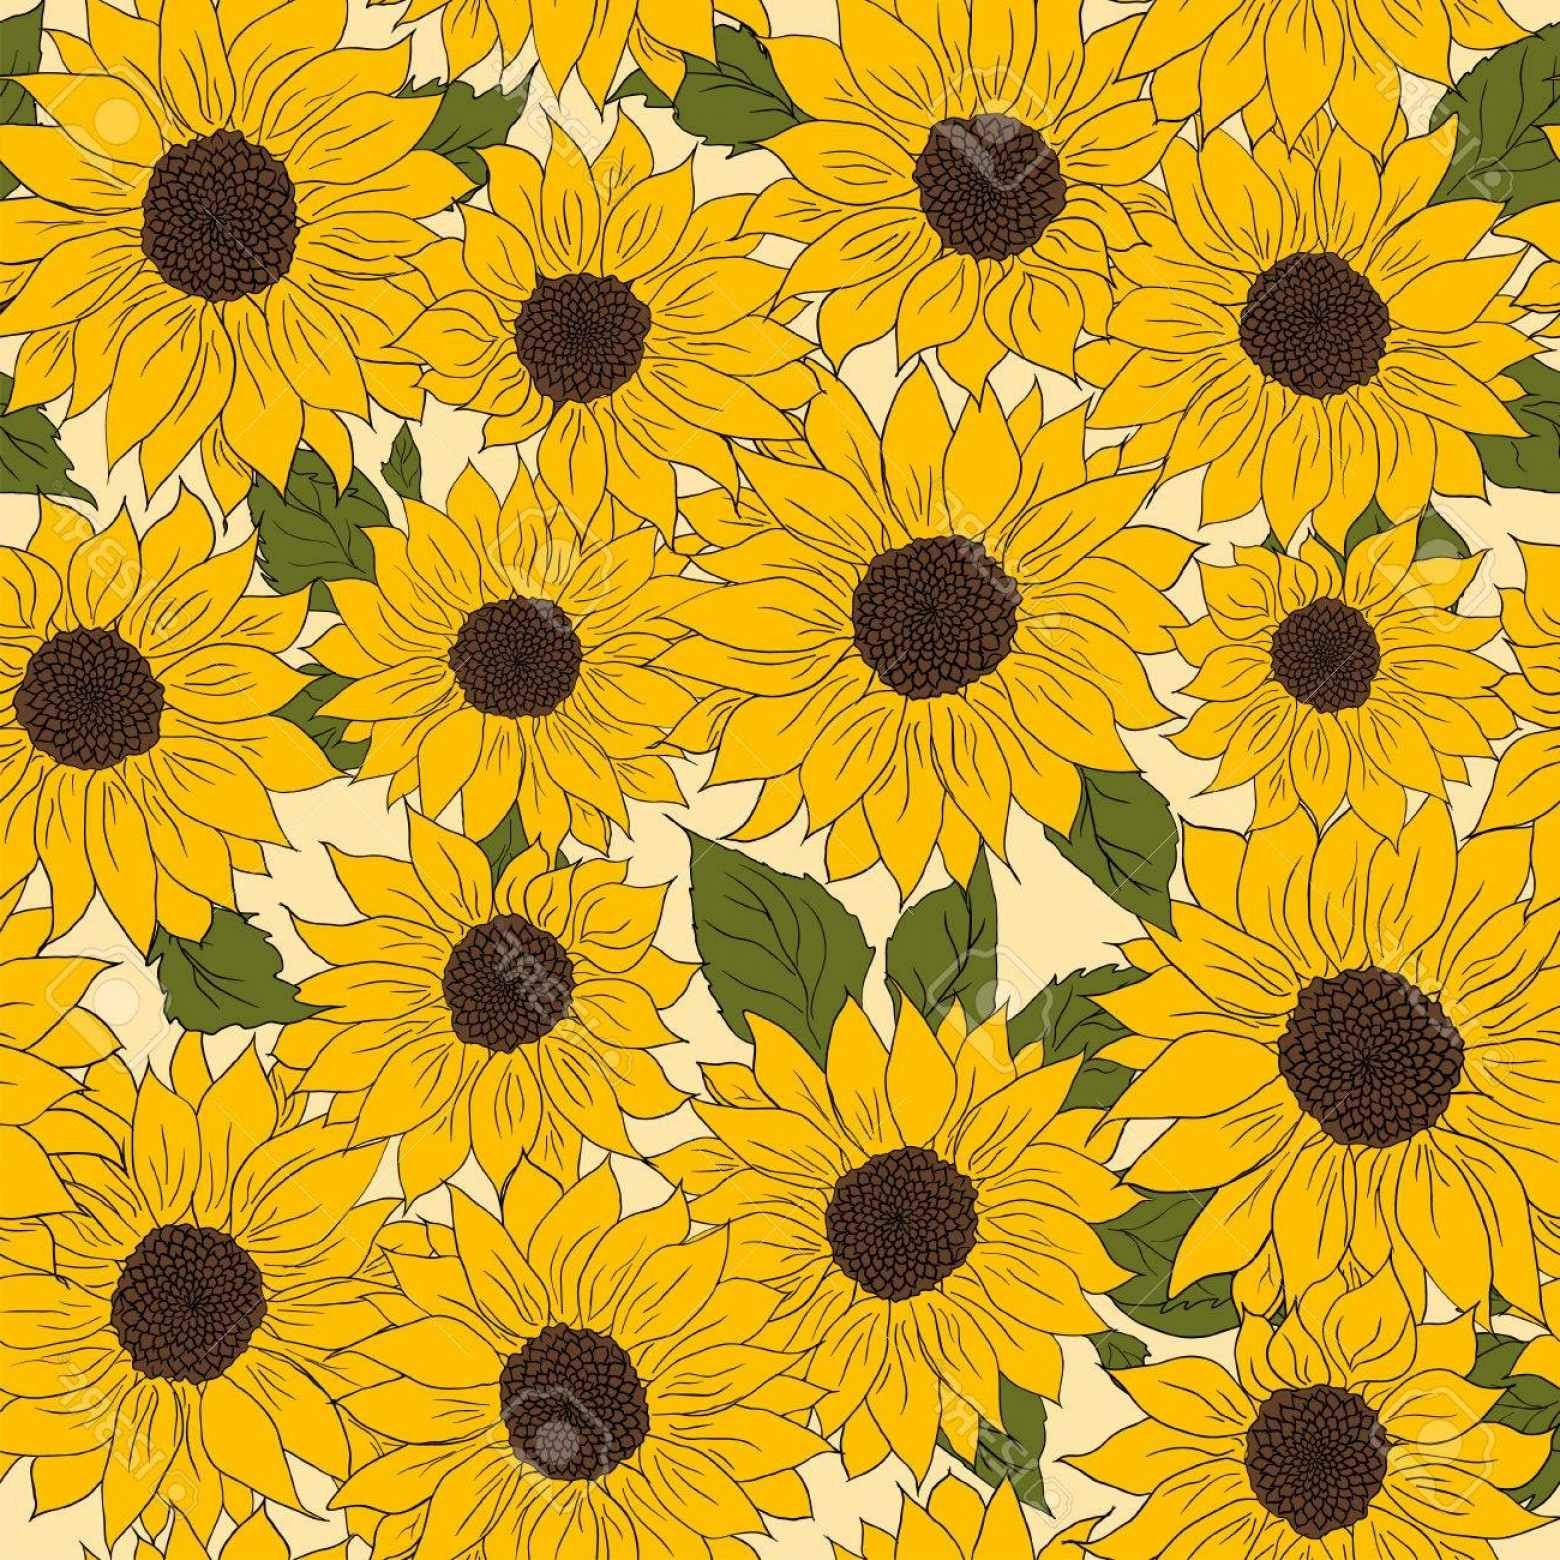 Sunflower Vector Pattern: Photostock Vector Hand Drawn Pattern Of Sunflowers Background Flower Sunflower Yellow And Brown Packaging Oil Products